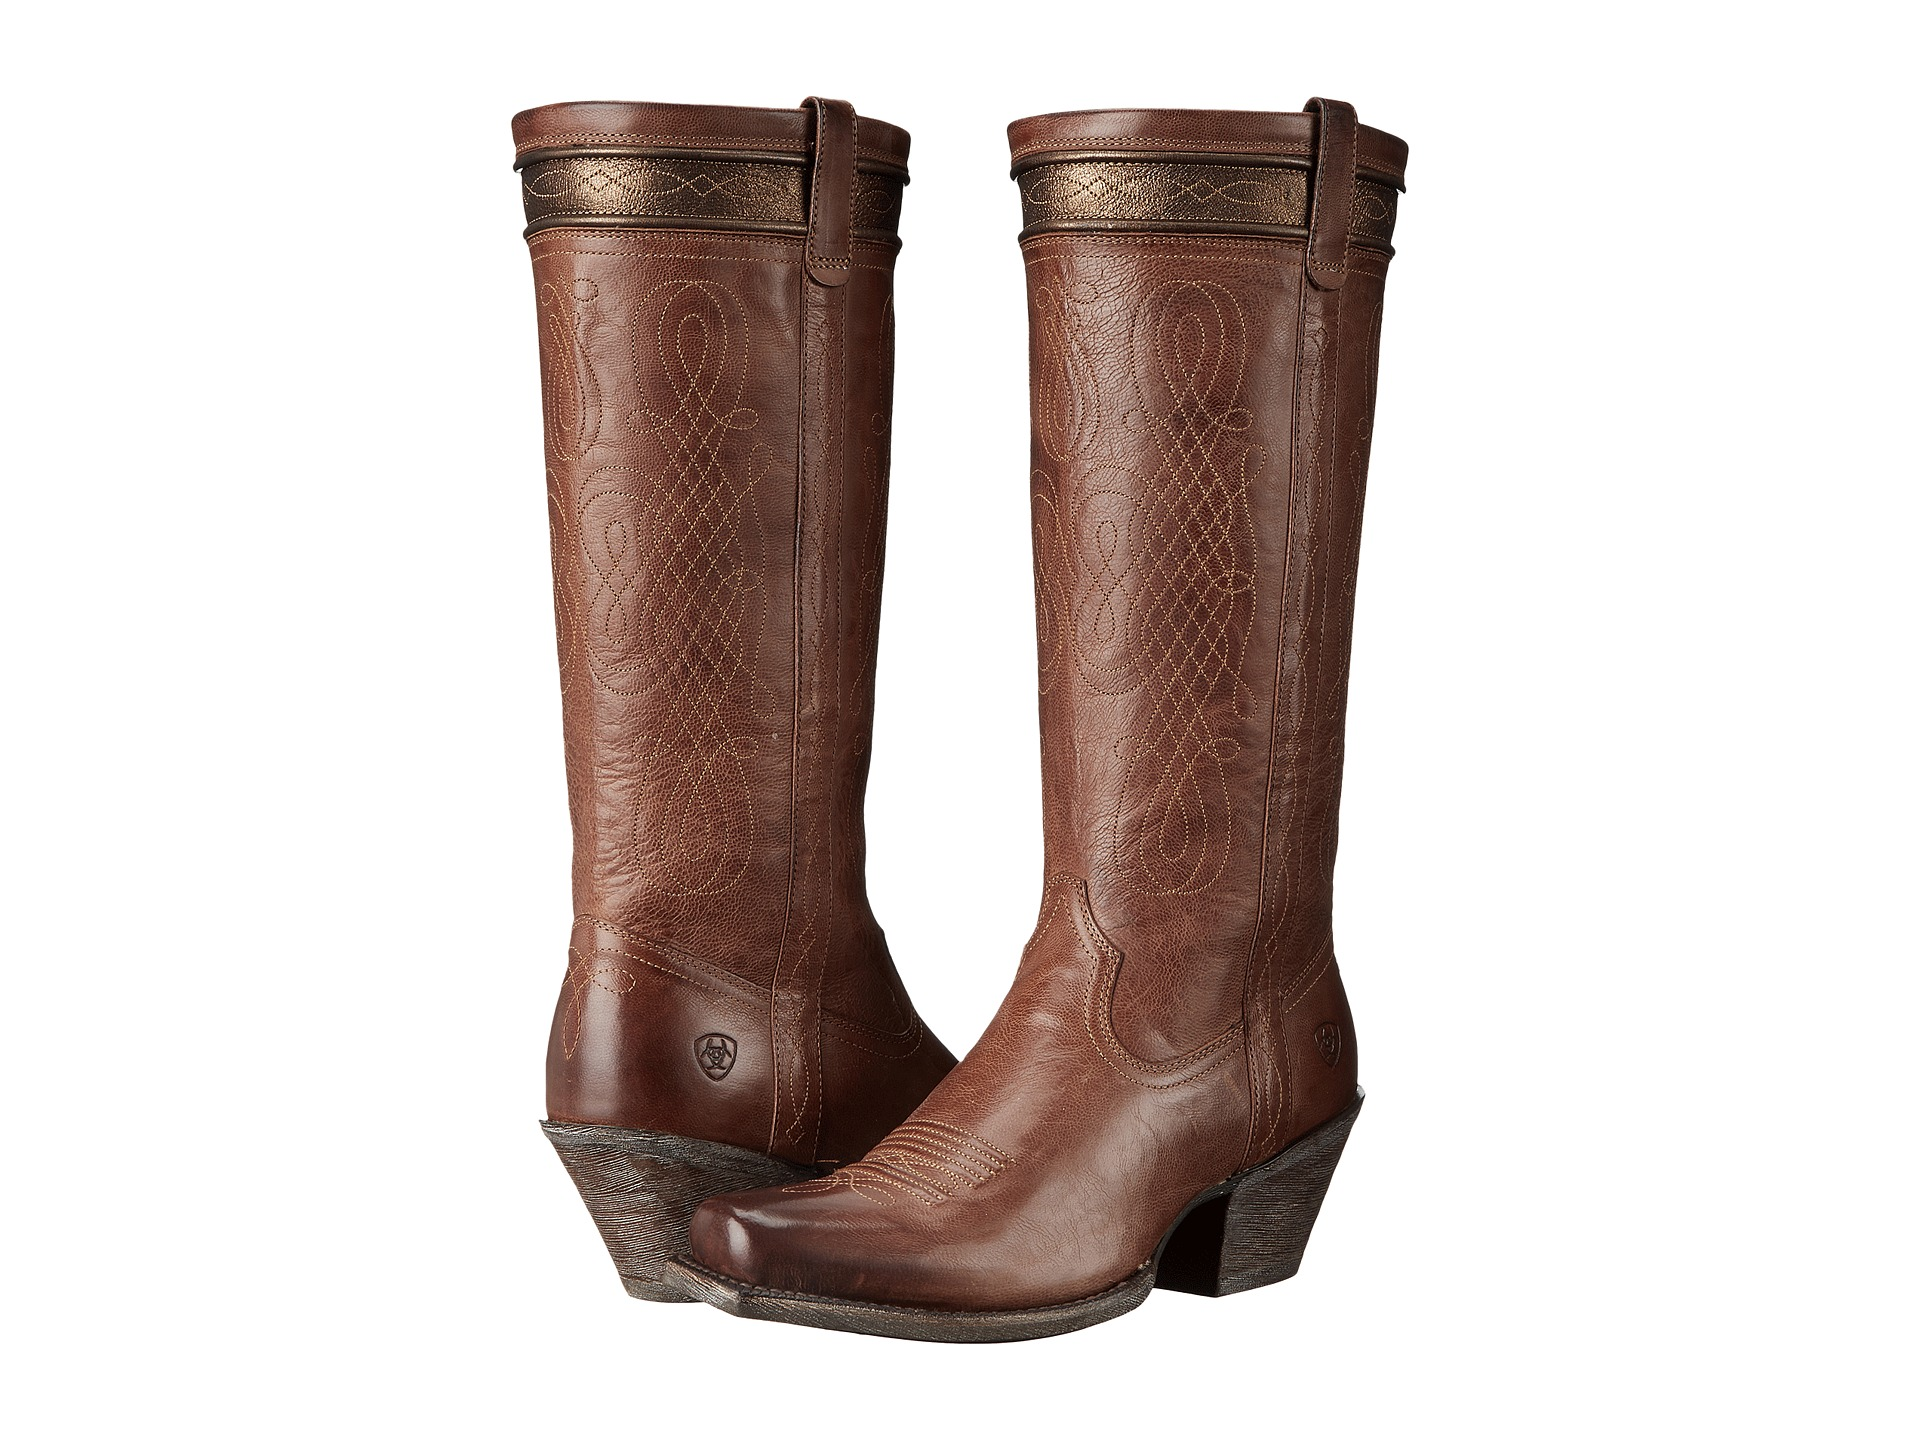 Ariat Shoes at 6pm.com